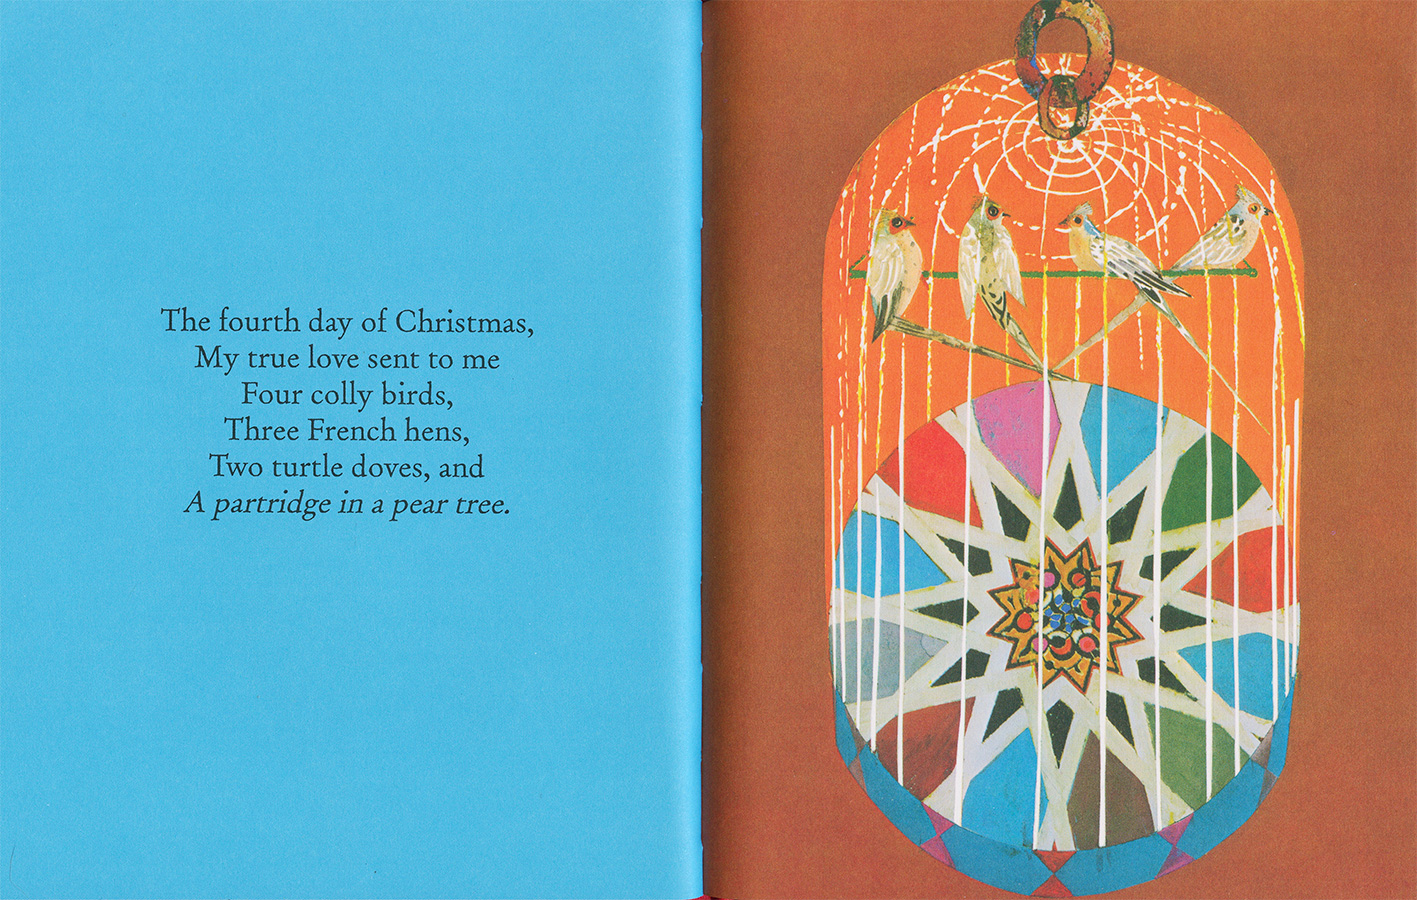 The-fourth-day-of-Christmas-from-The-Twelve-Days-of-Christmas-by-Brian-Wildsmith.jpg